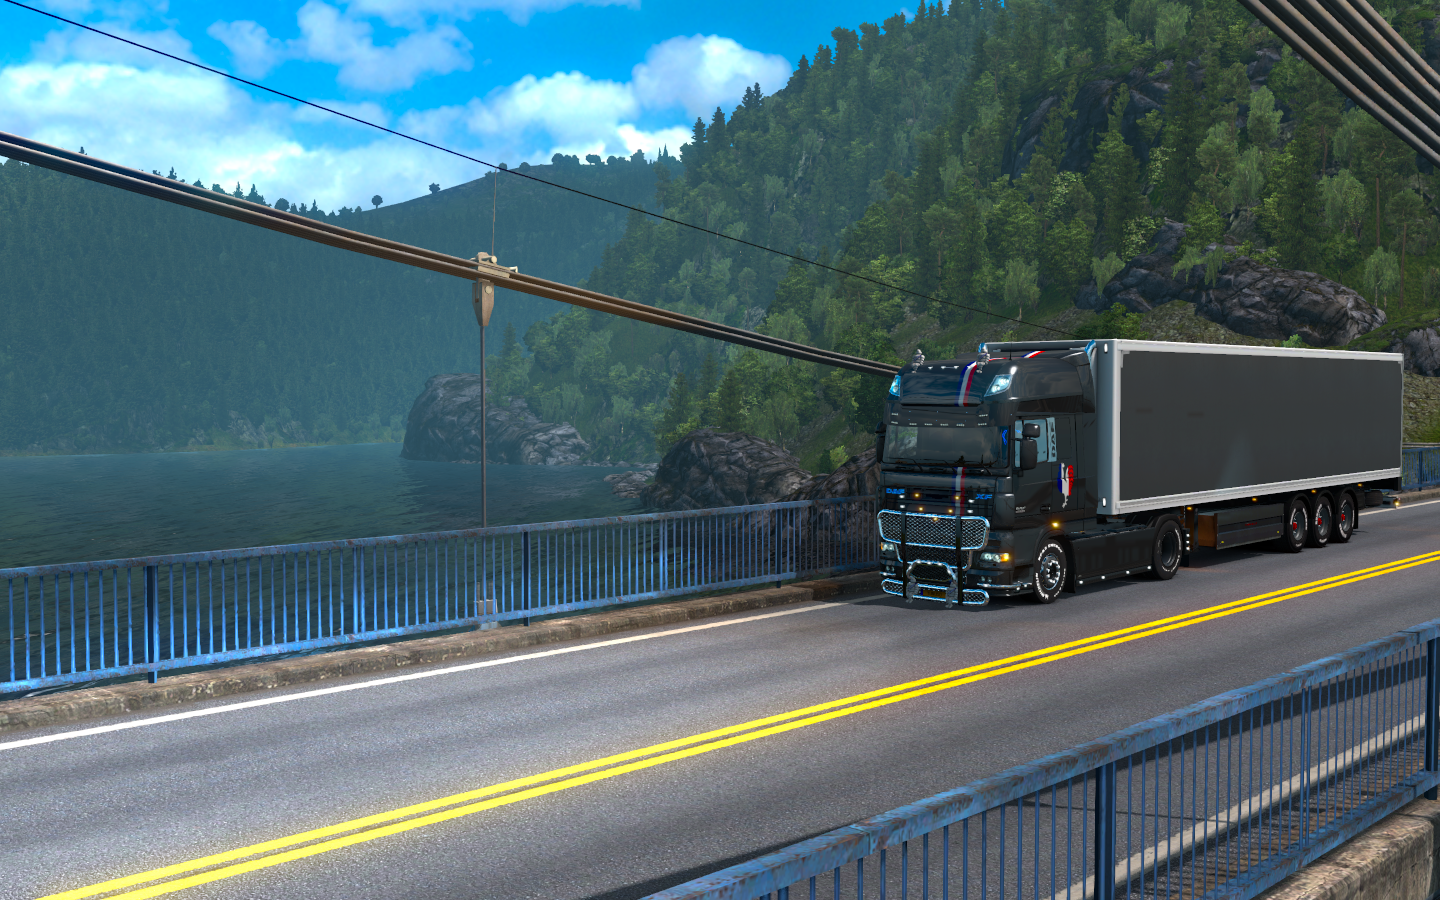 ets2_20190228_174119_00.png